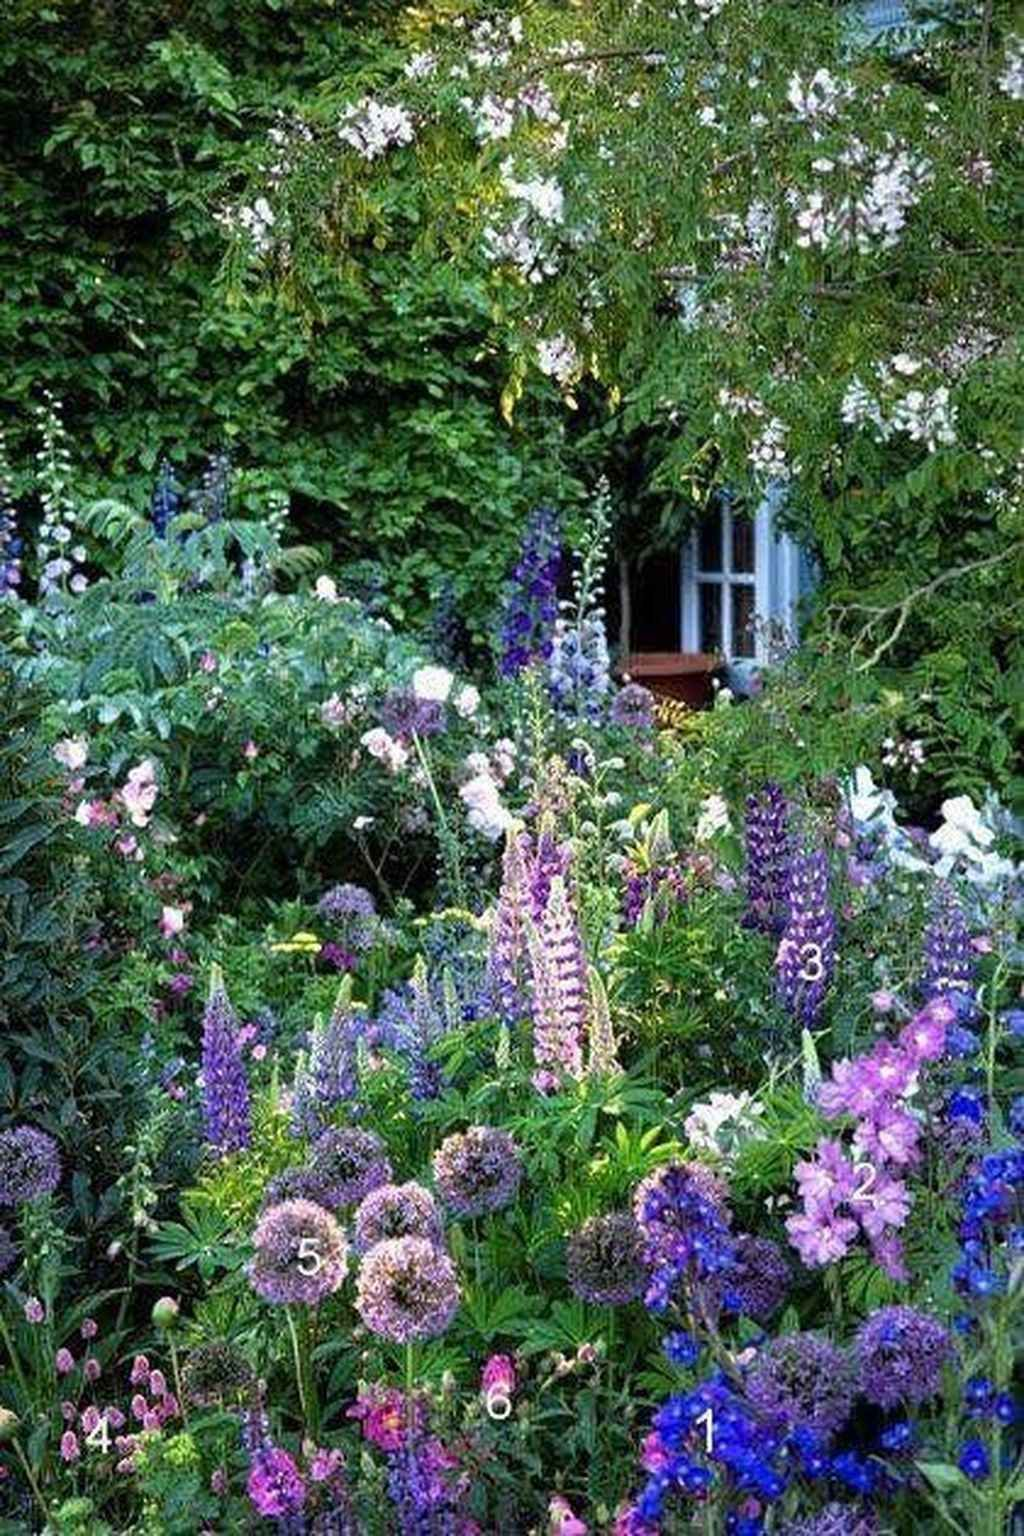 11 beautiful small cottage garden ideas for backyard on inspiring trends front yard landscaping ideas minimal budget id=68195